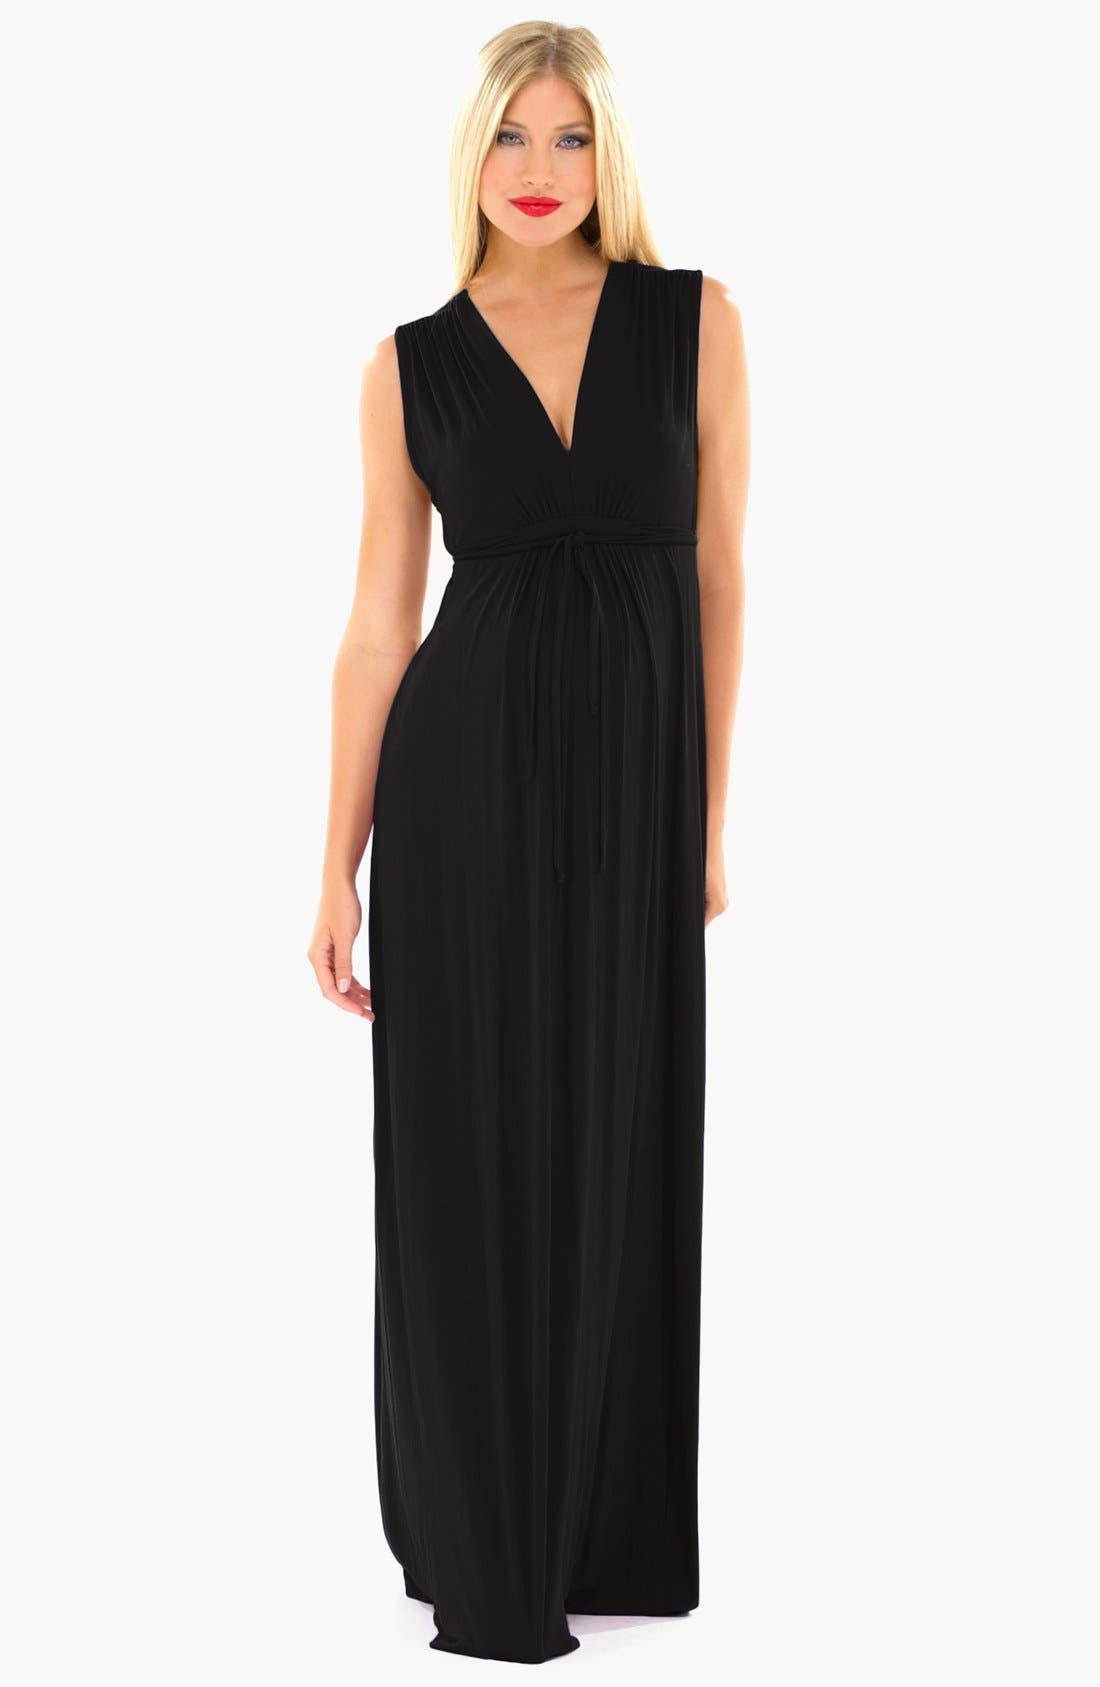 Maternity dresses to wear to a wedding buyretina olian lucy maternity maxi dress great ideas ombrellifo Choice Image